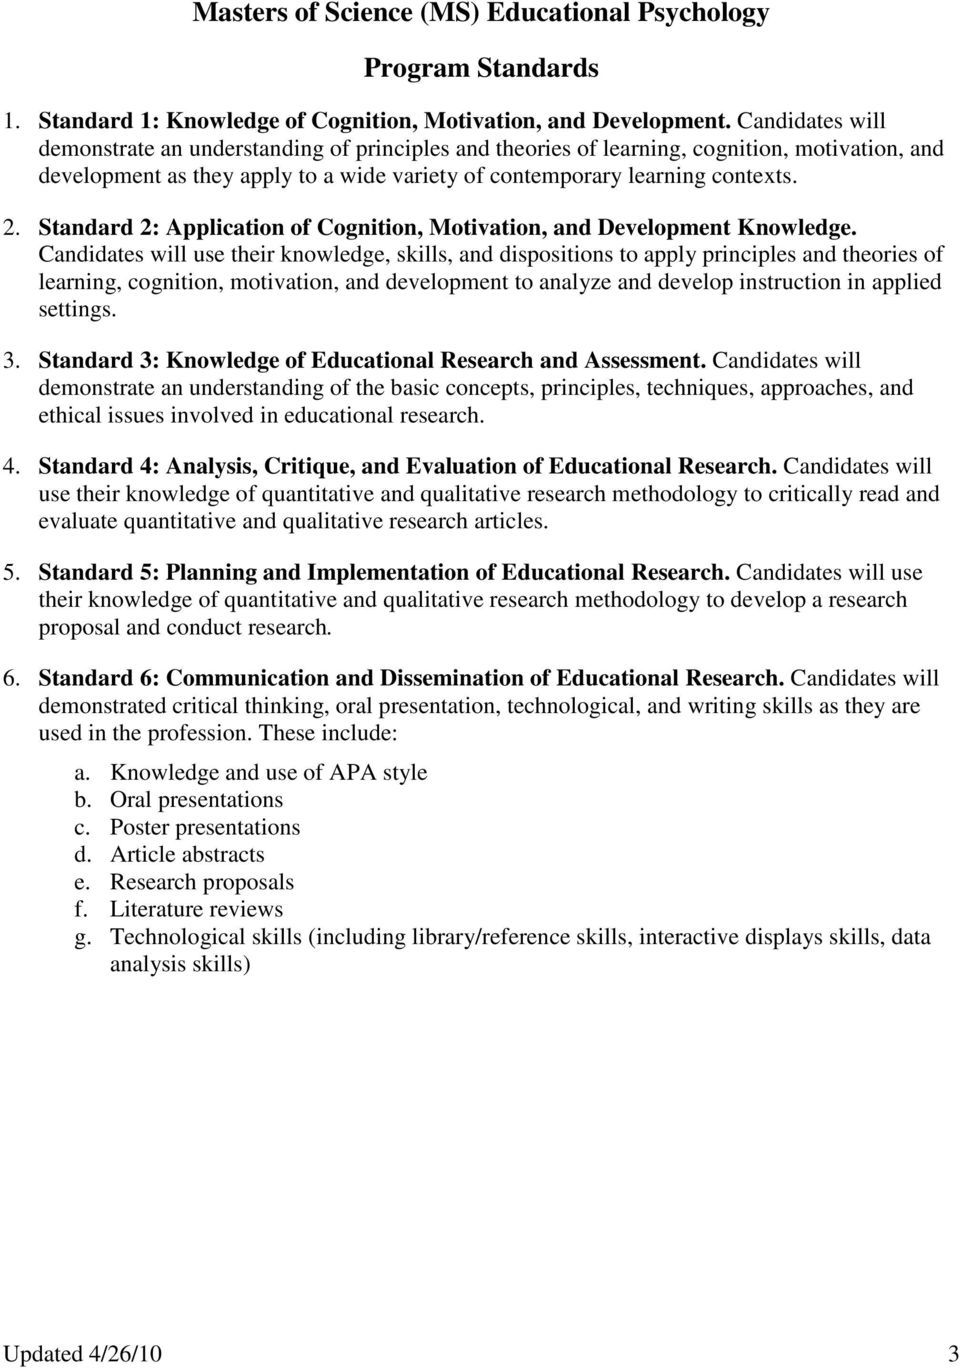 Standard 2: Application of Cognition, Motivation, and Development Knowledge.